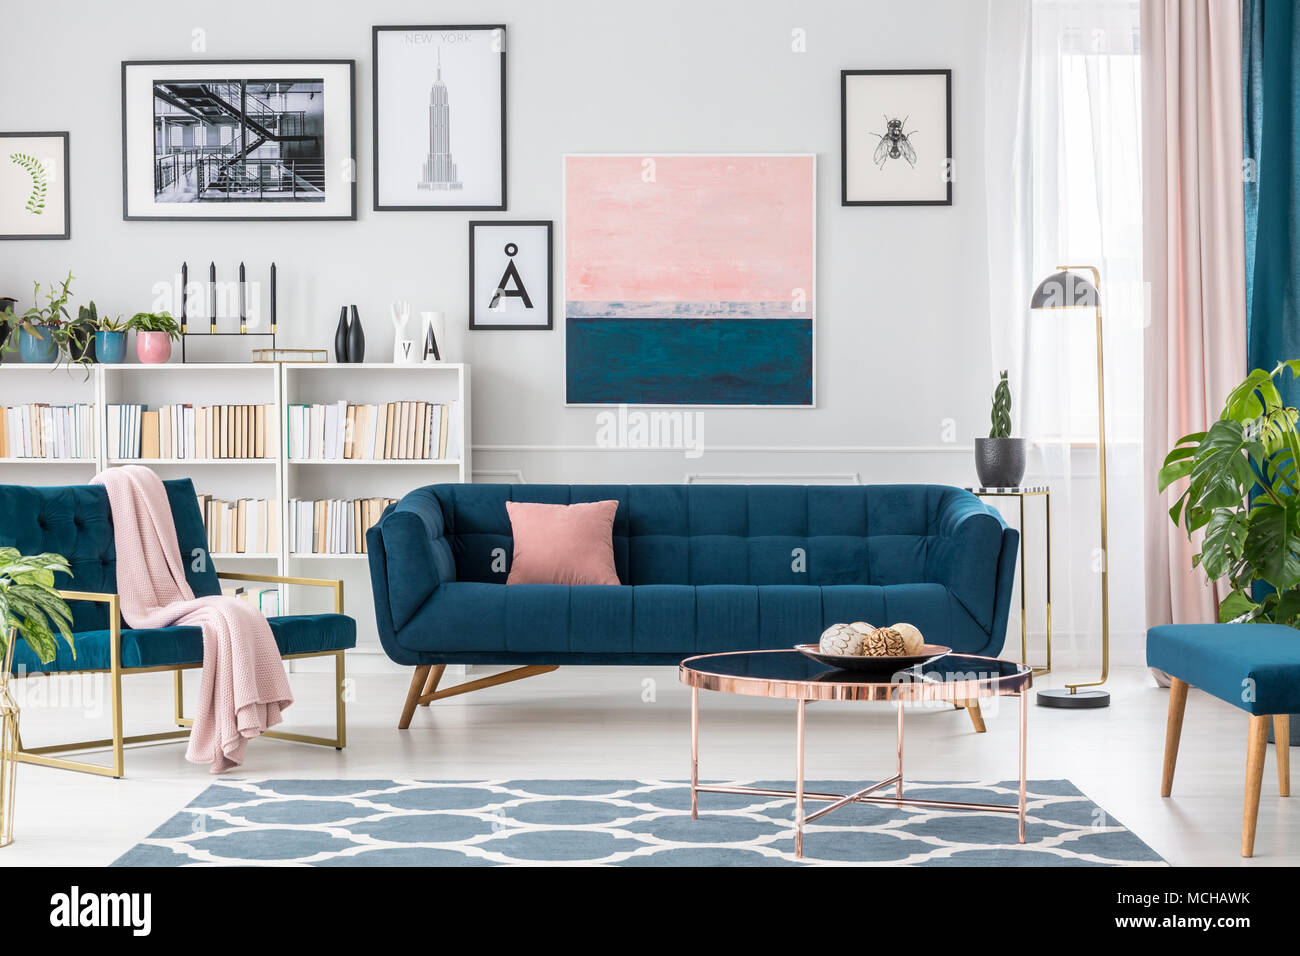 . Modern living room interior with blue sofa  rug  art collection and